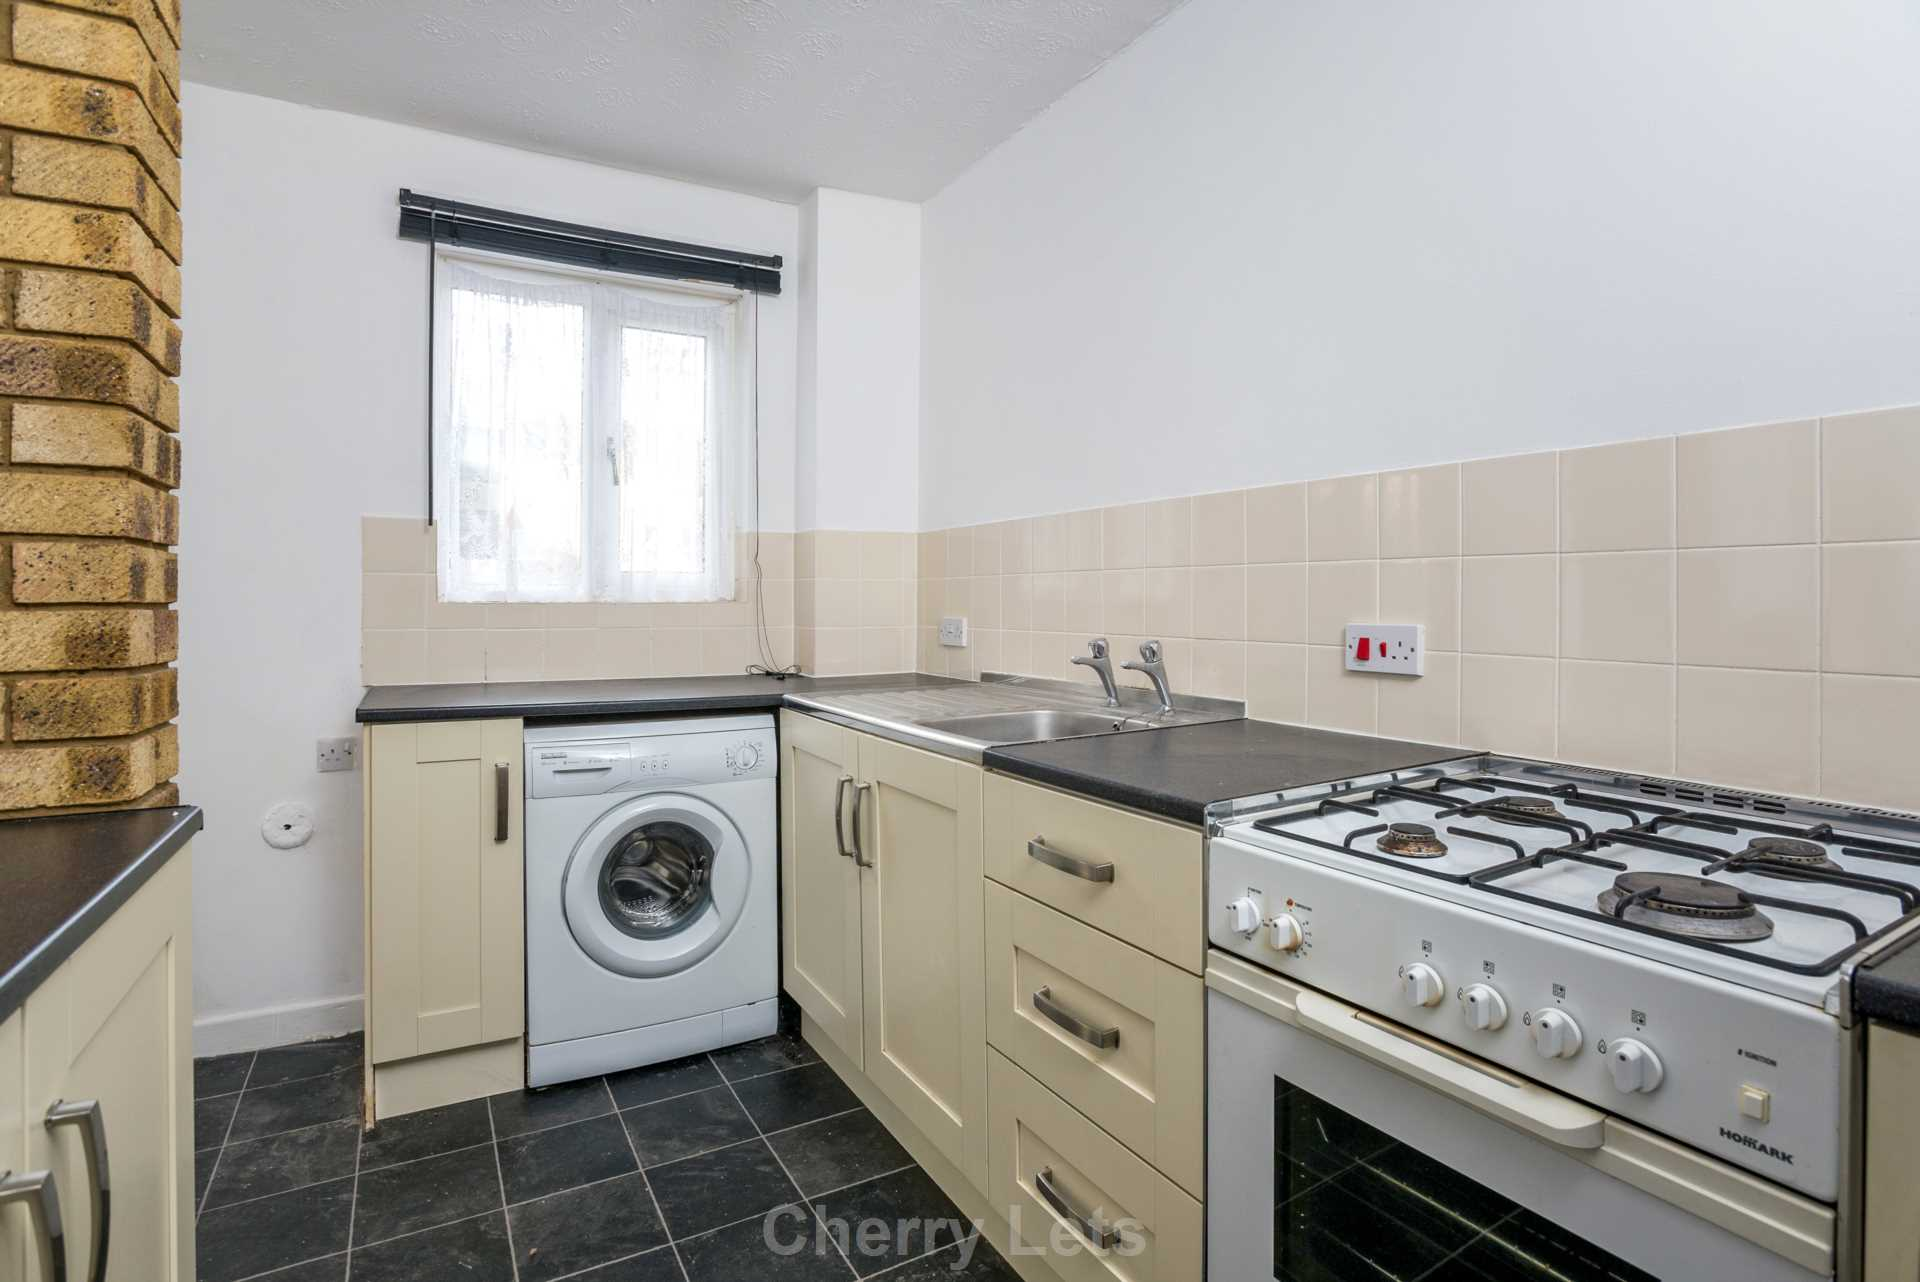 1 bed end of terrace house to rent in Bedford Close, Banbury, OX16 2